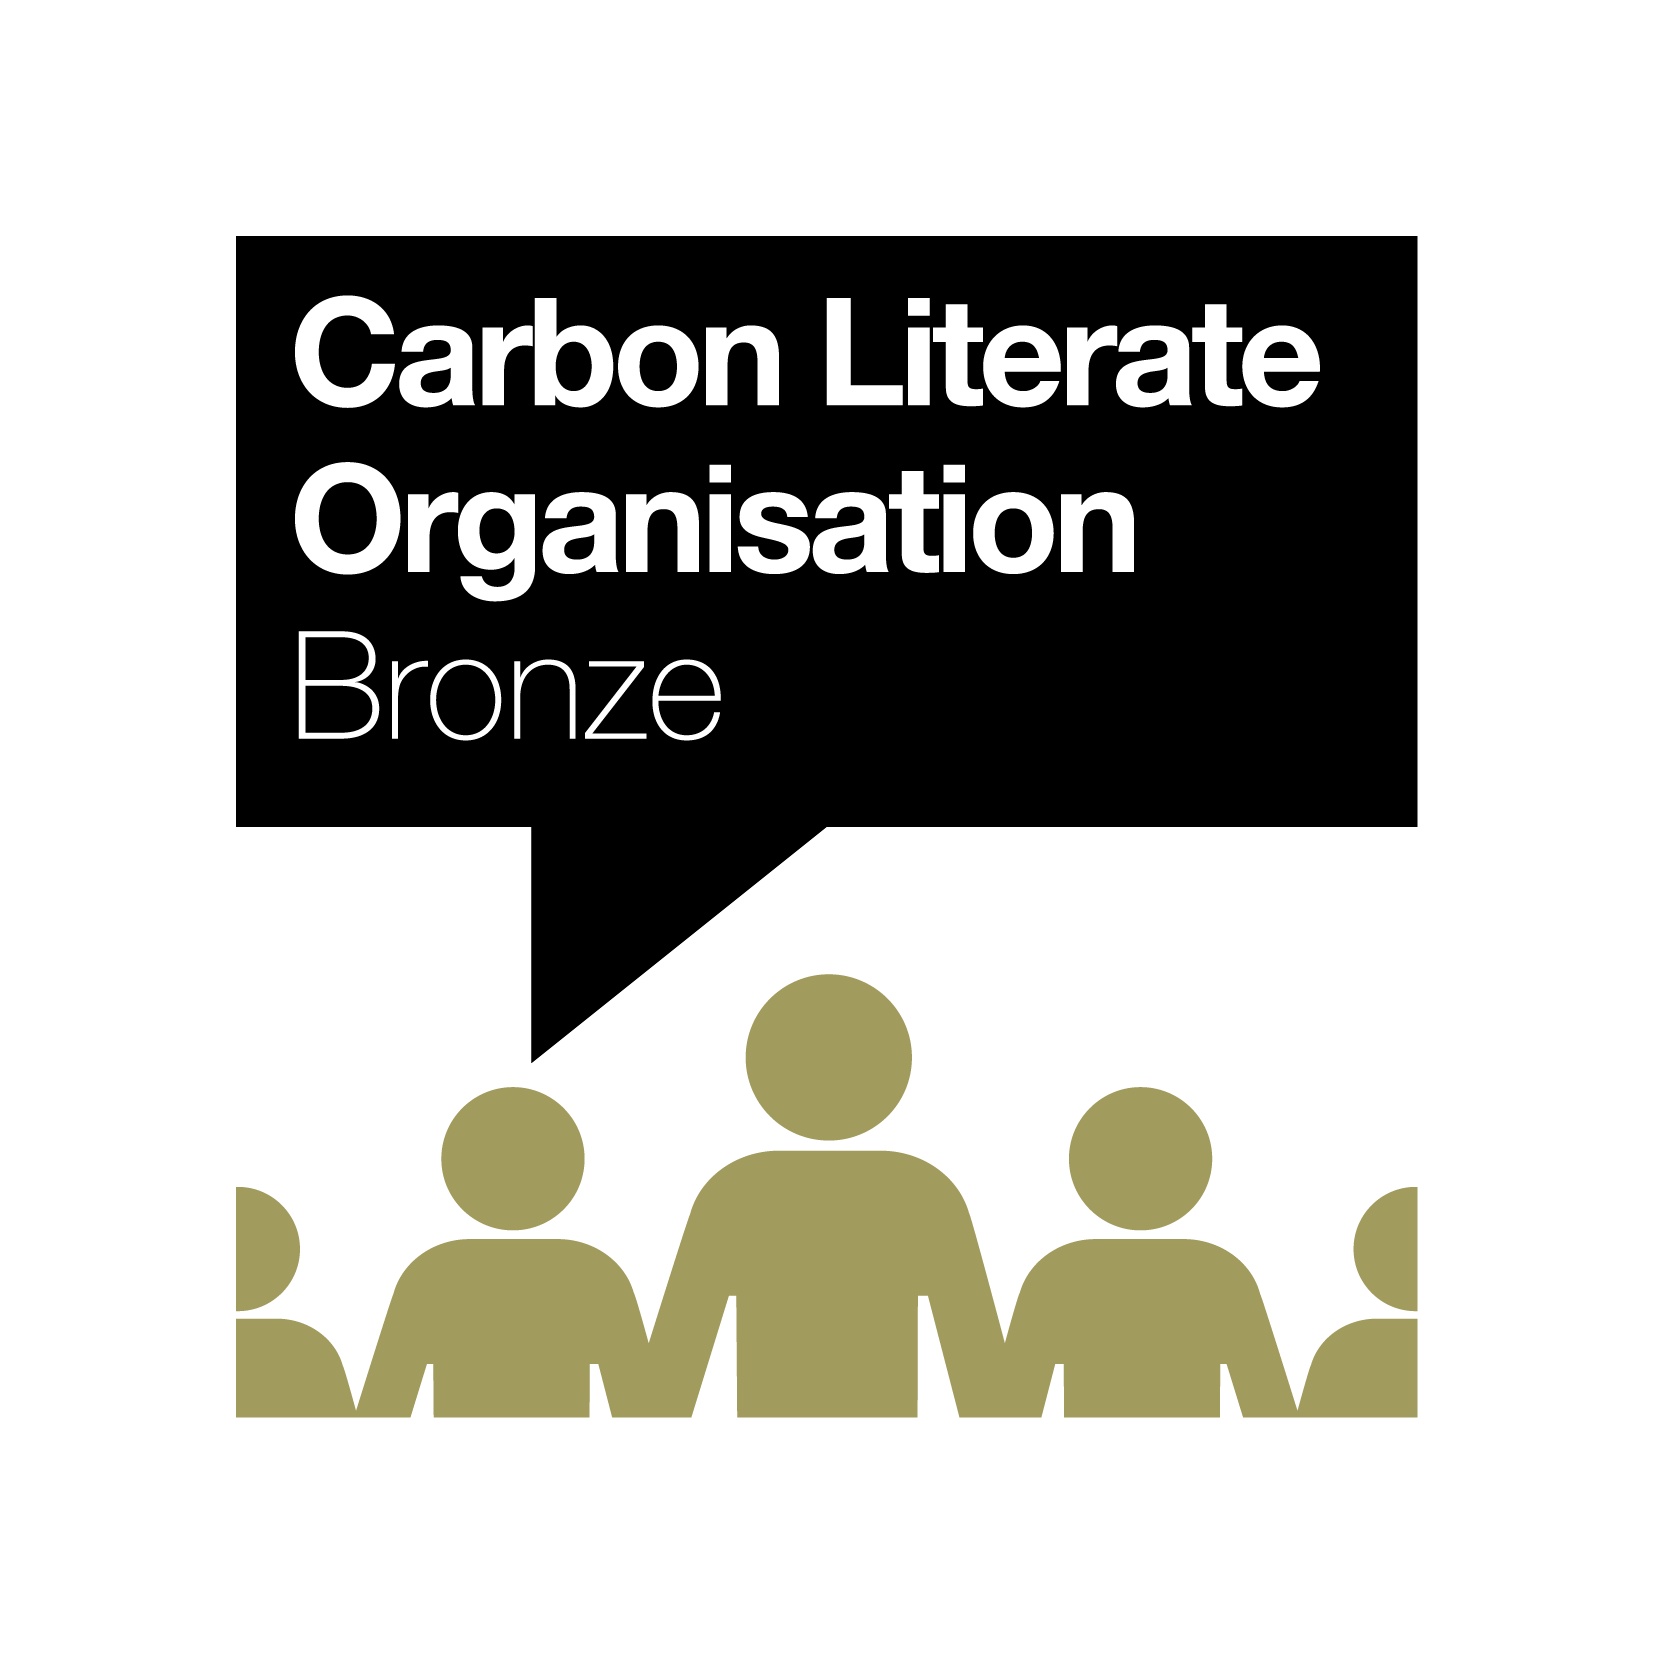 Carbon Literate Organisation (Bronze) logo